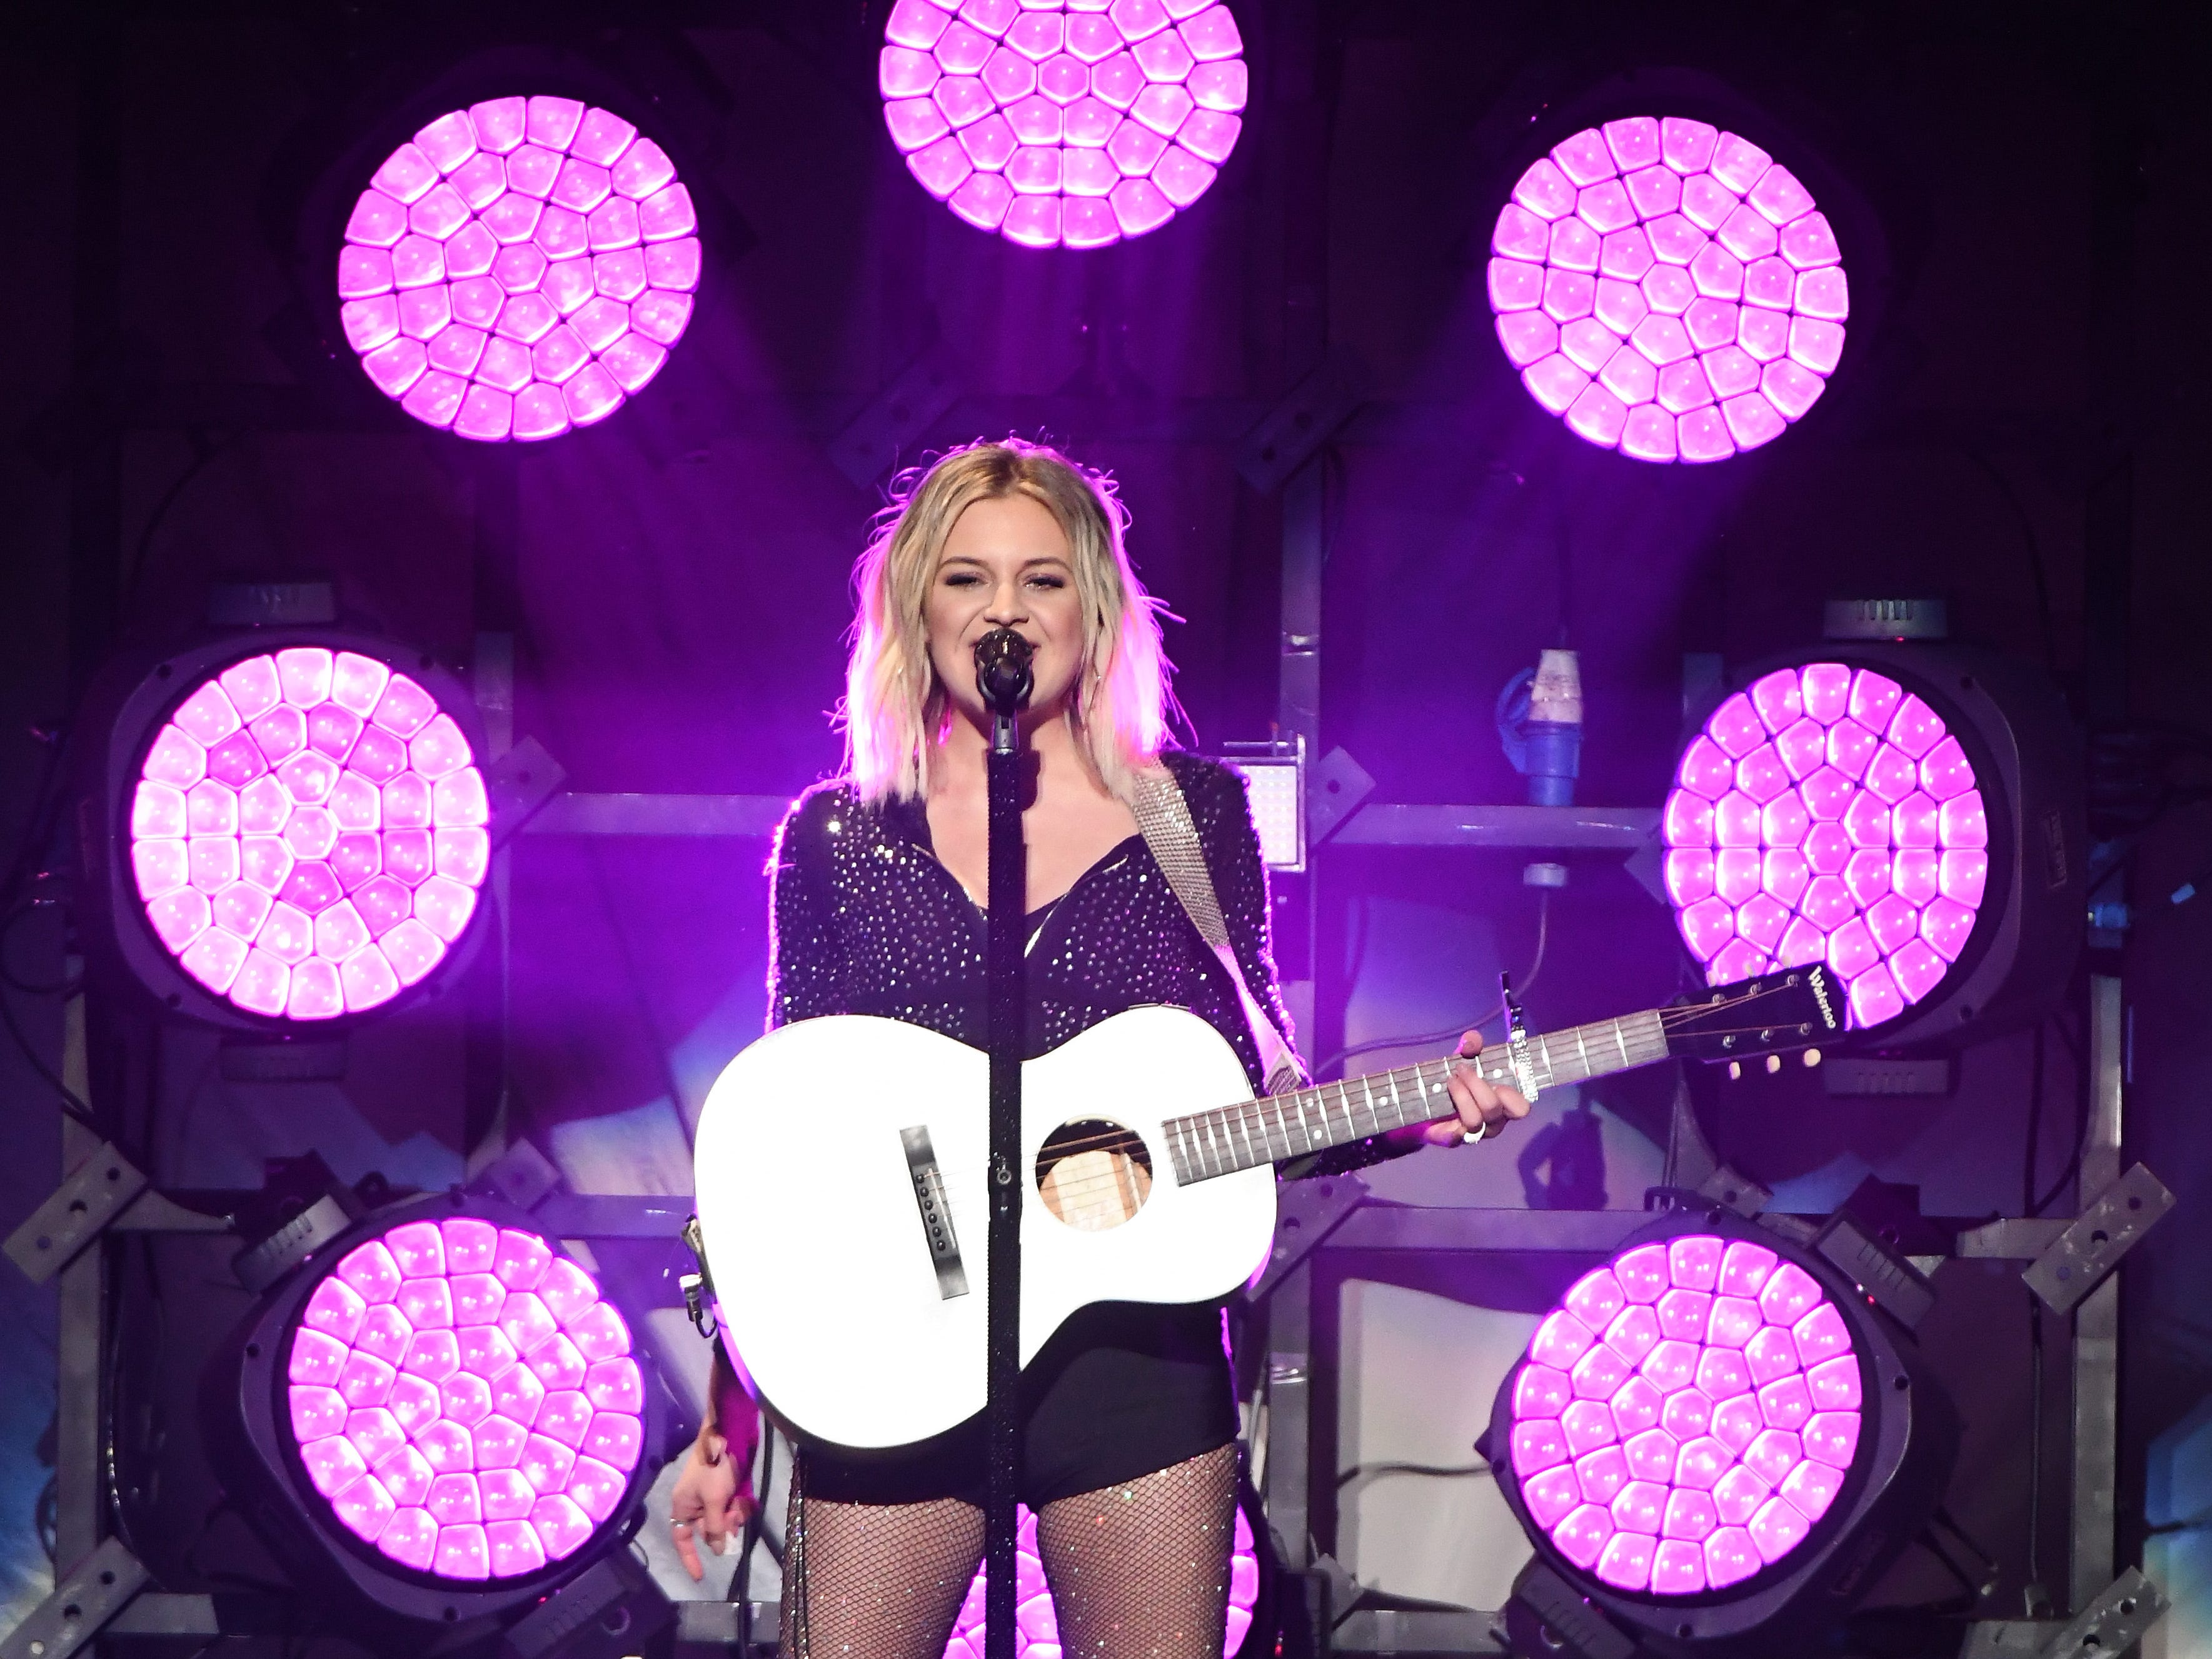 Kelsea Ballerini performs, opening before Kelly Clarkson takes the stage.